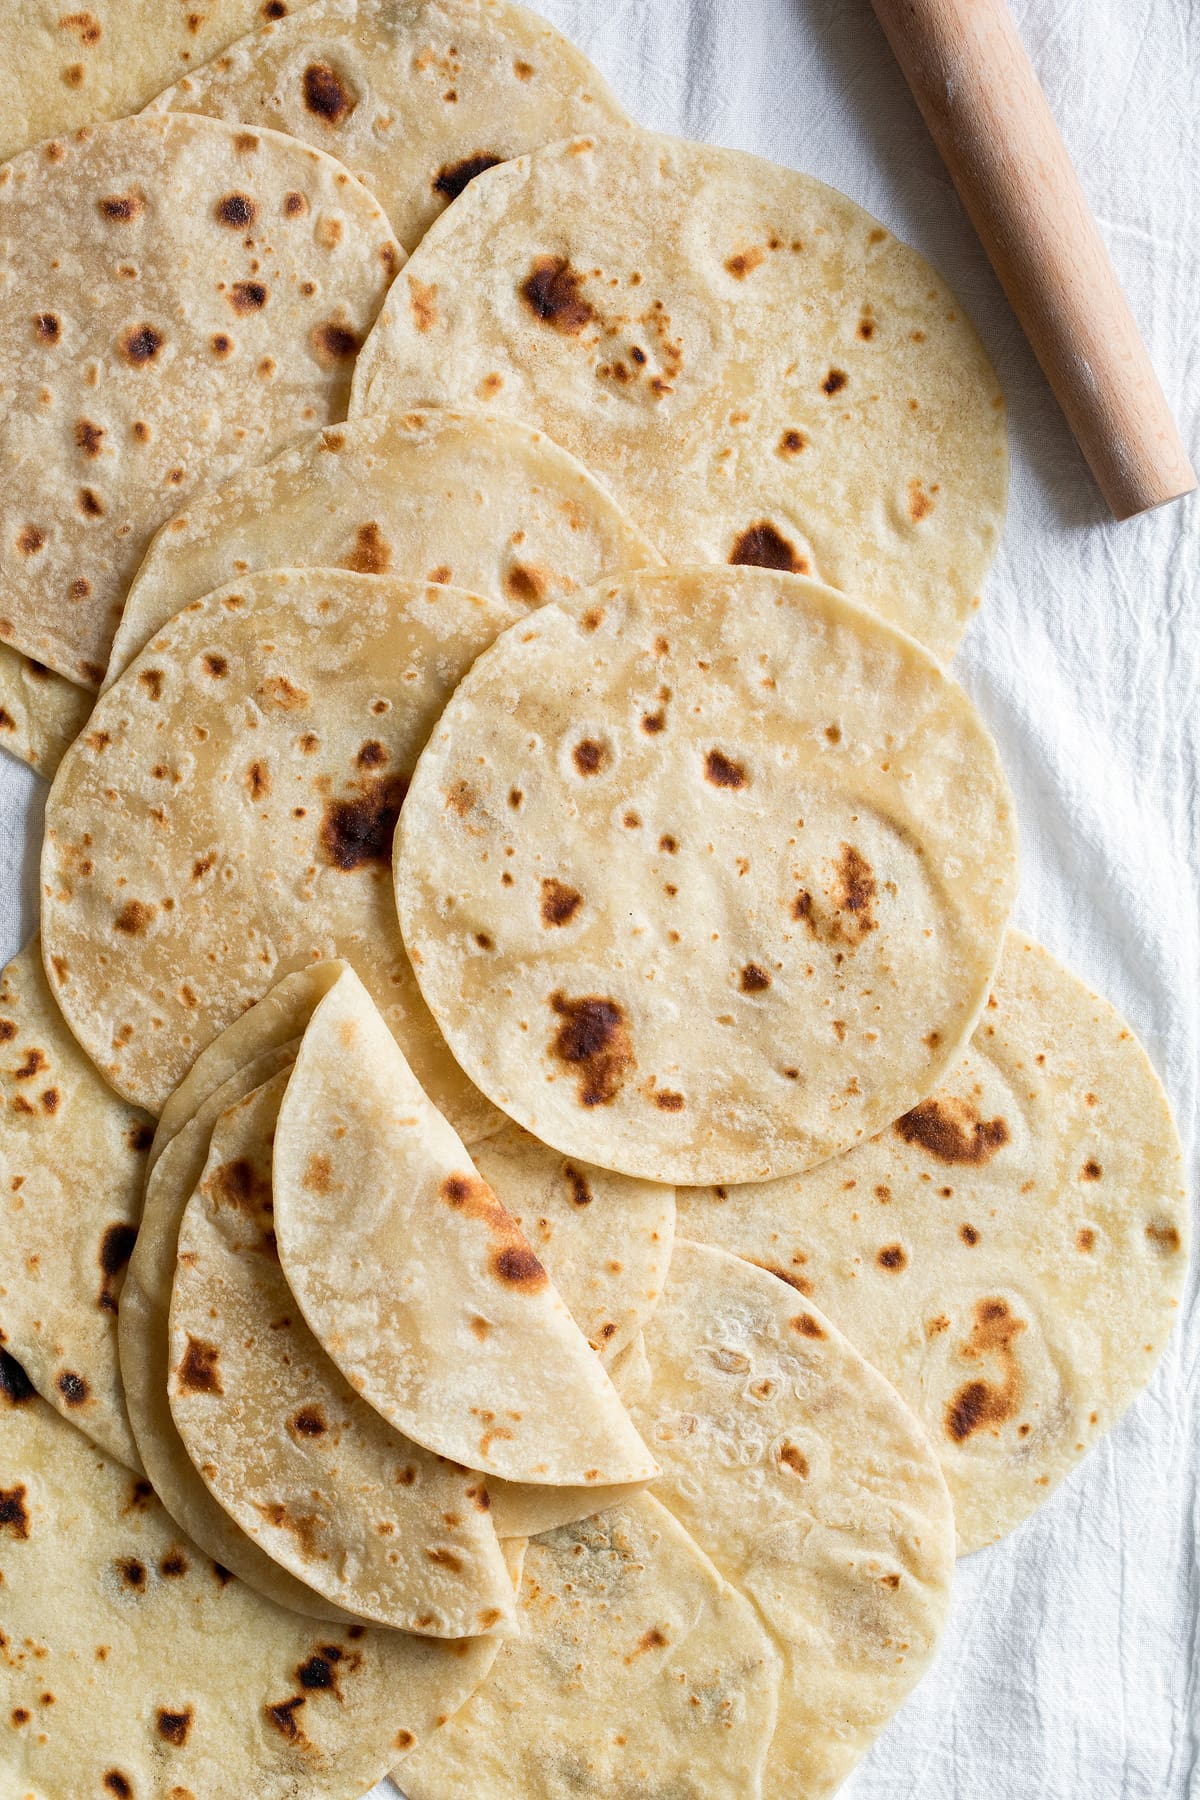 Overhead image of flour tortillas layered across each other on a white kitchen cloth.